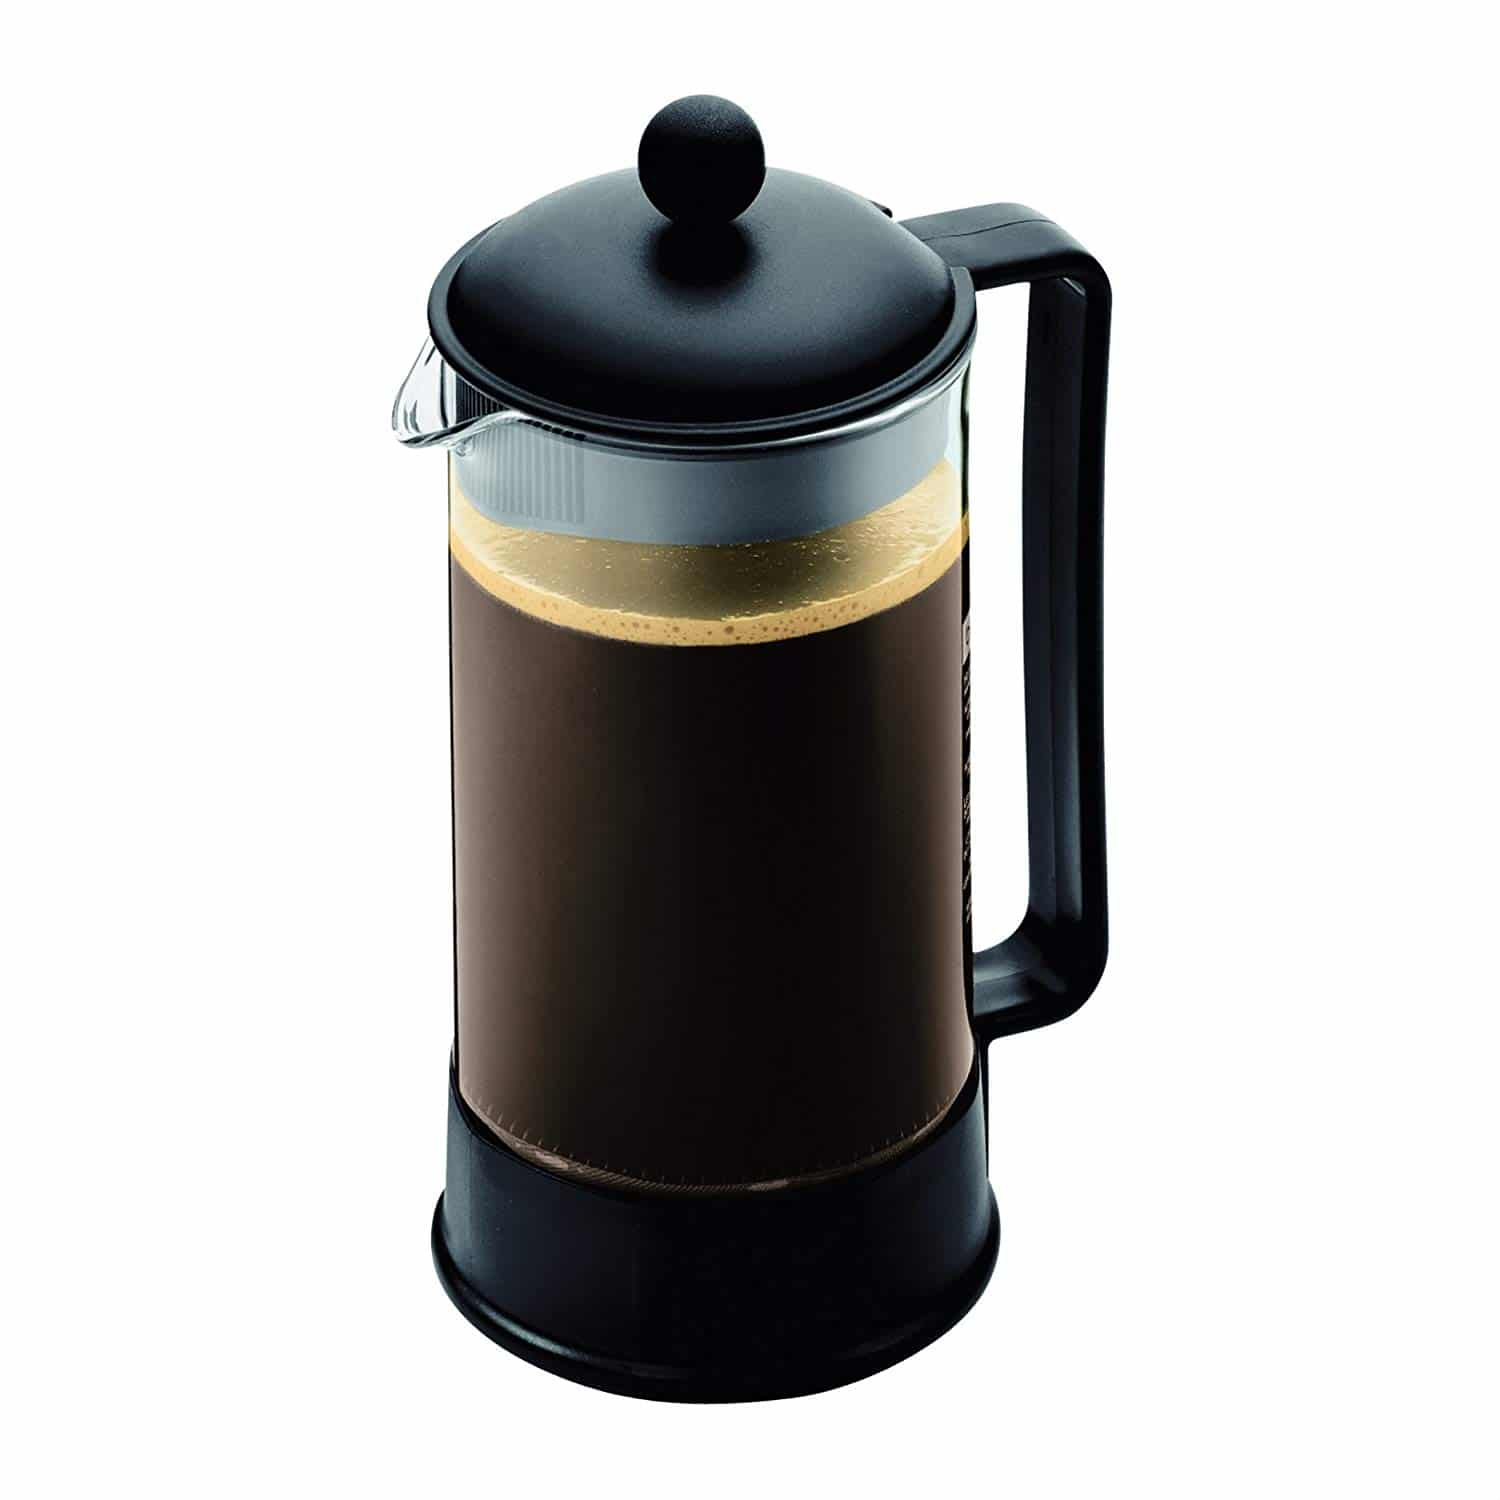 Bodum Brazil French Press Coffee & Tea Maker info